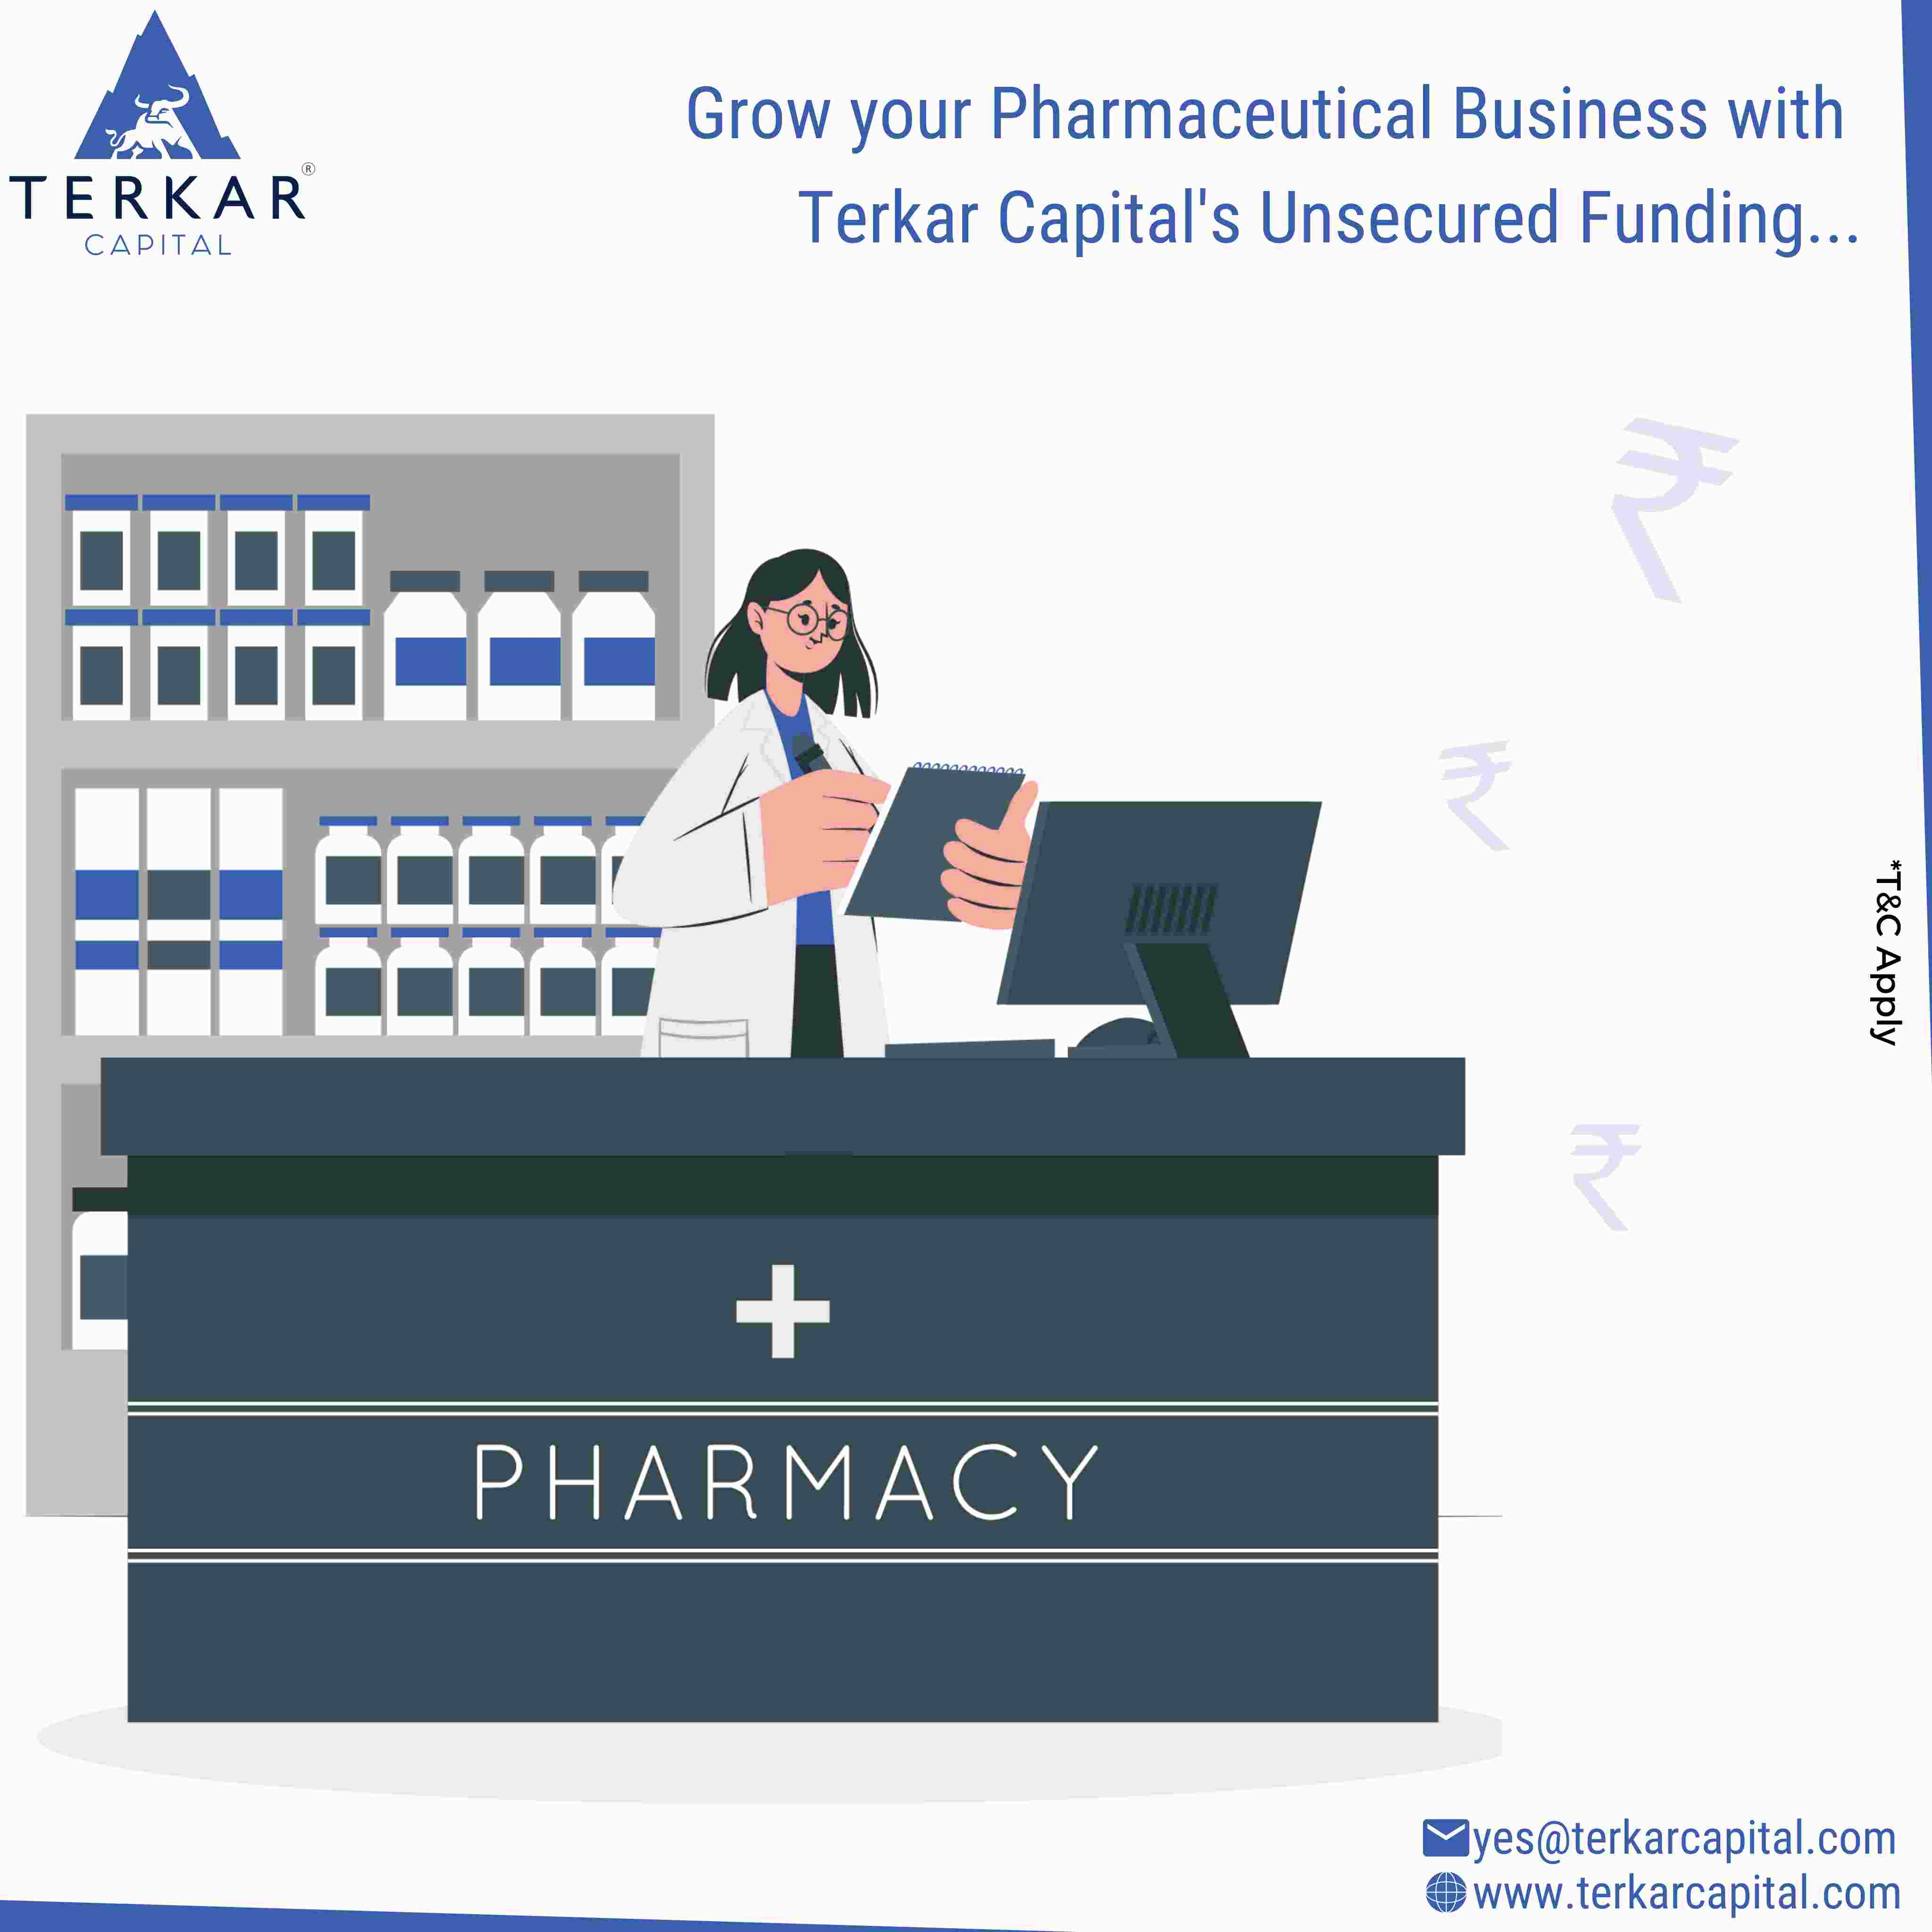 Unsecured funding for Pharmaceutical Business